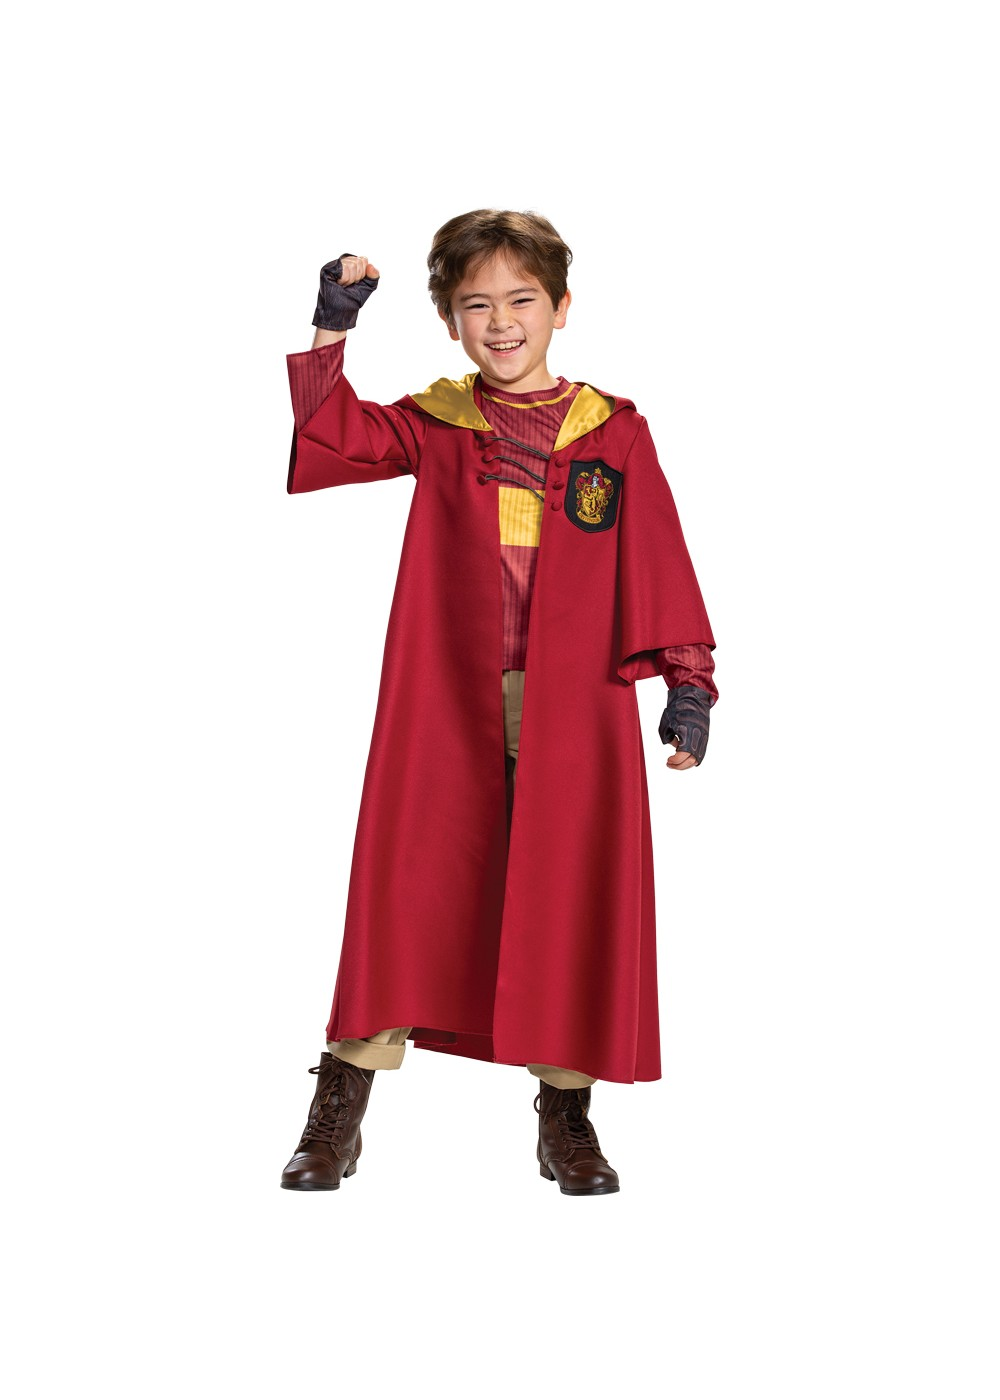 Kids Quidditch Gryffindor Child Costume